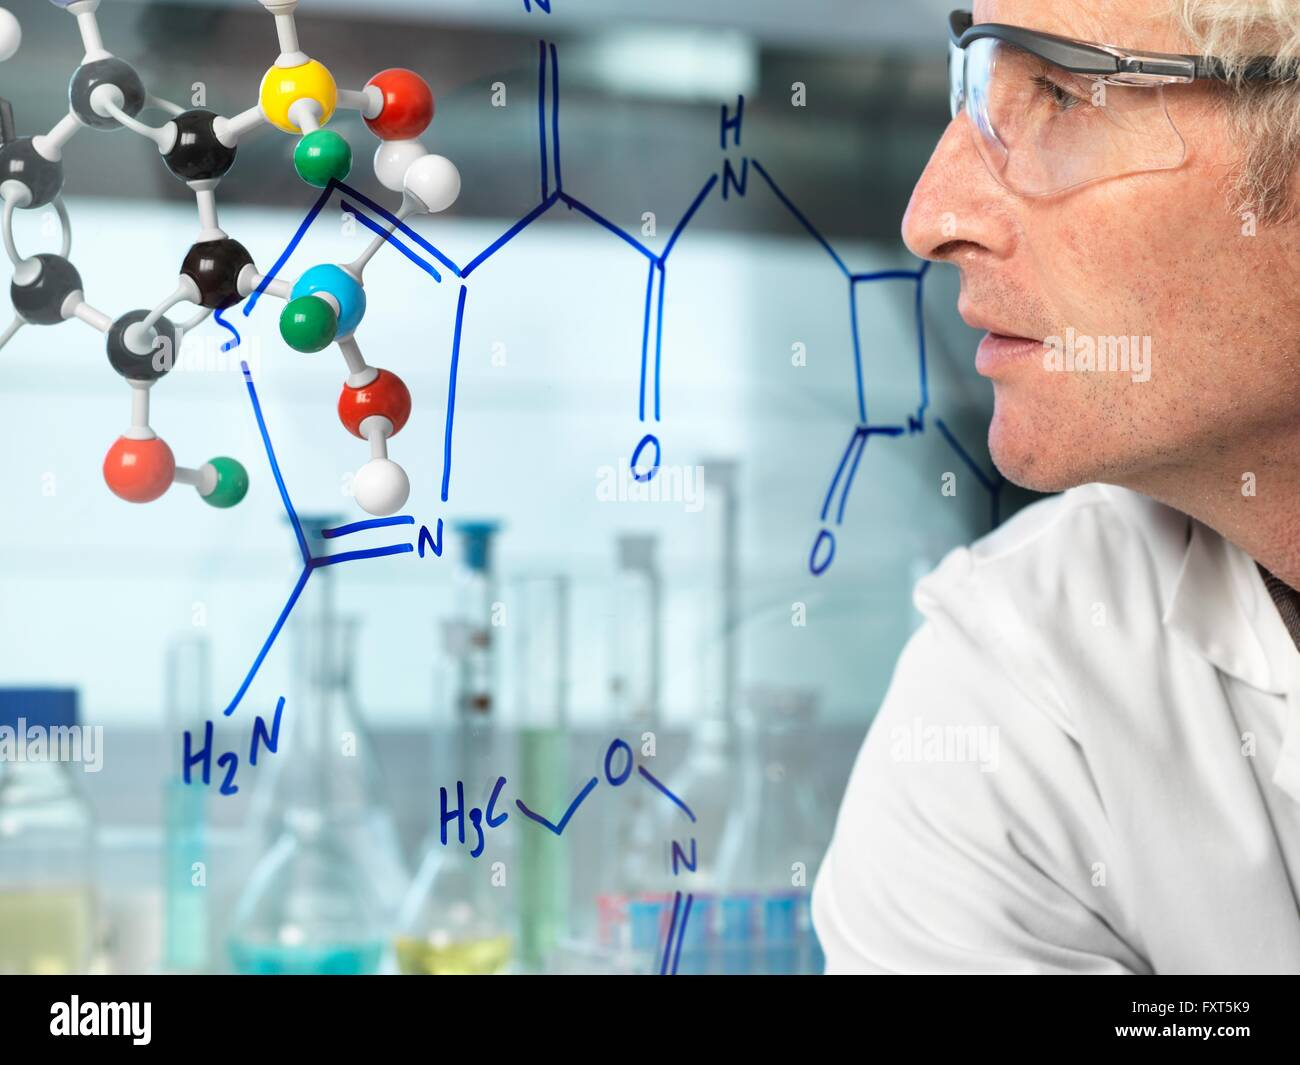 Scientist with ball and stick molecular model looking at new drug formula written on glass - Stock Image